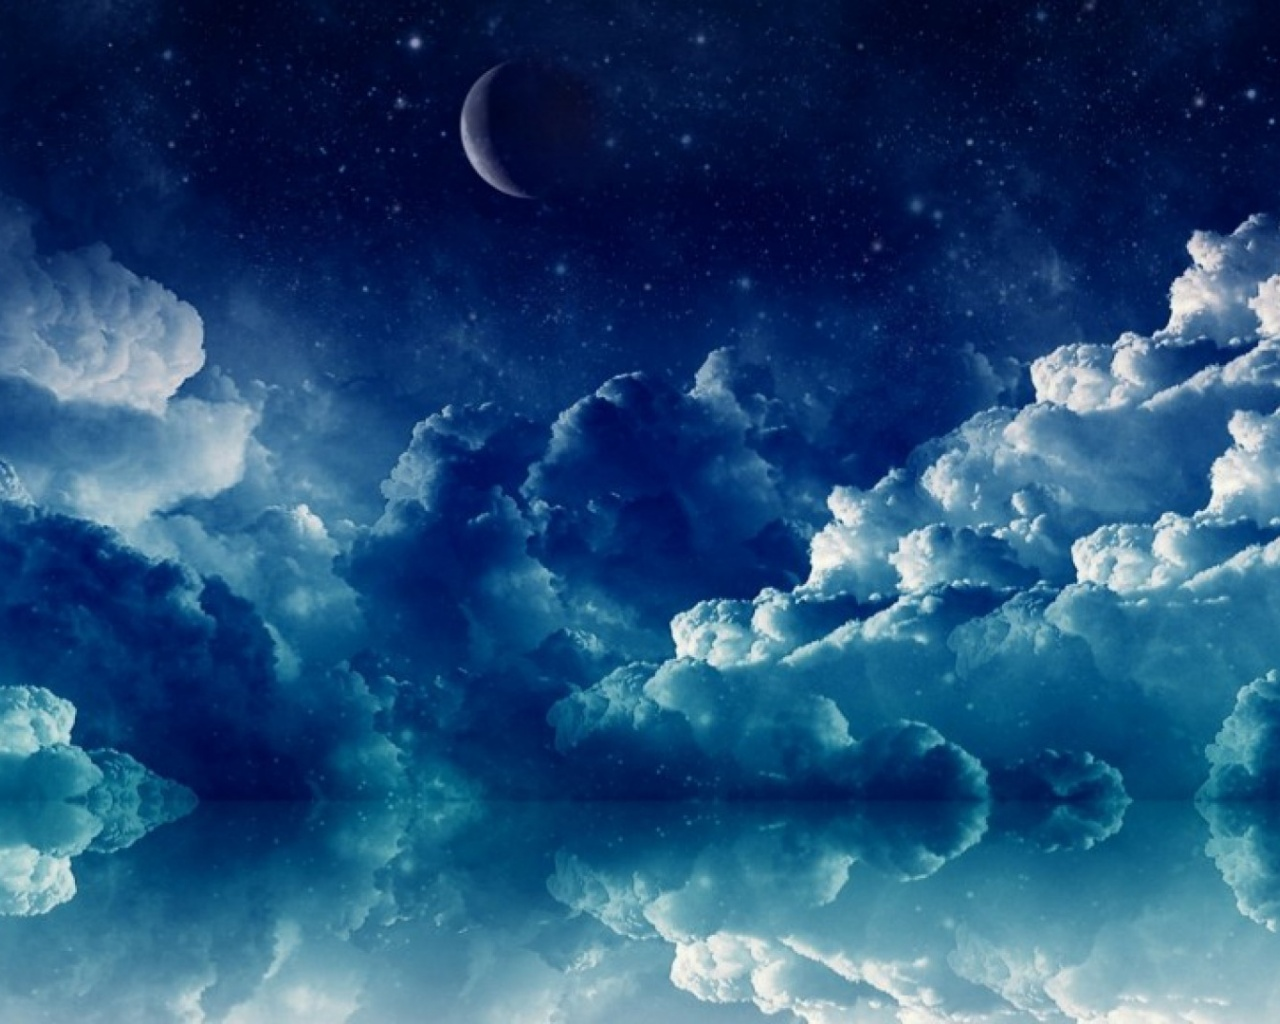 Edward Barbanell Wallpapers Pretty Blue Wallpapers OriginalHD Pretty Blue Night